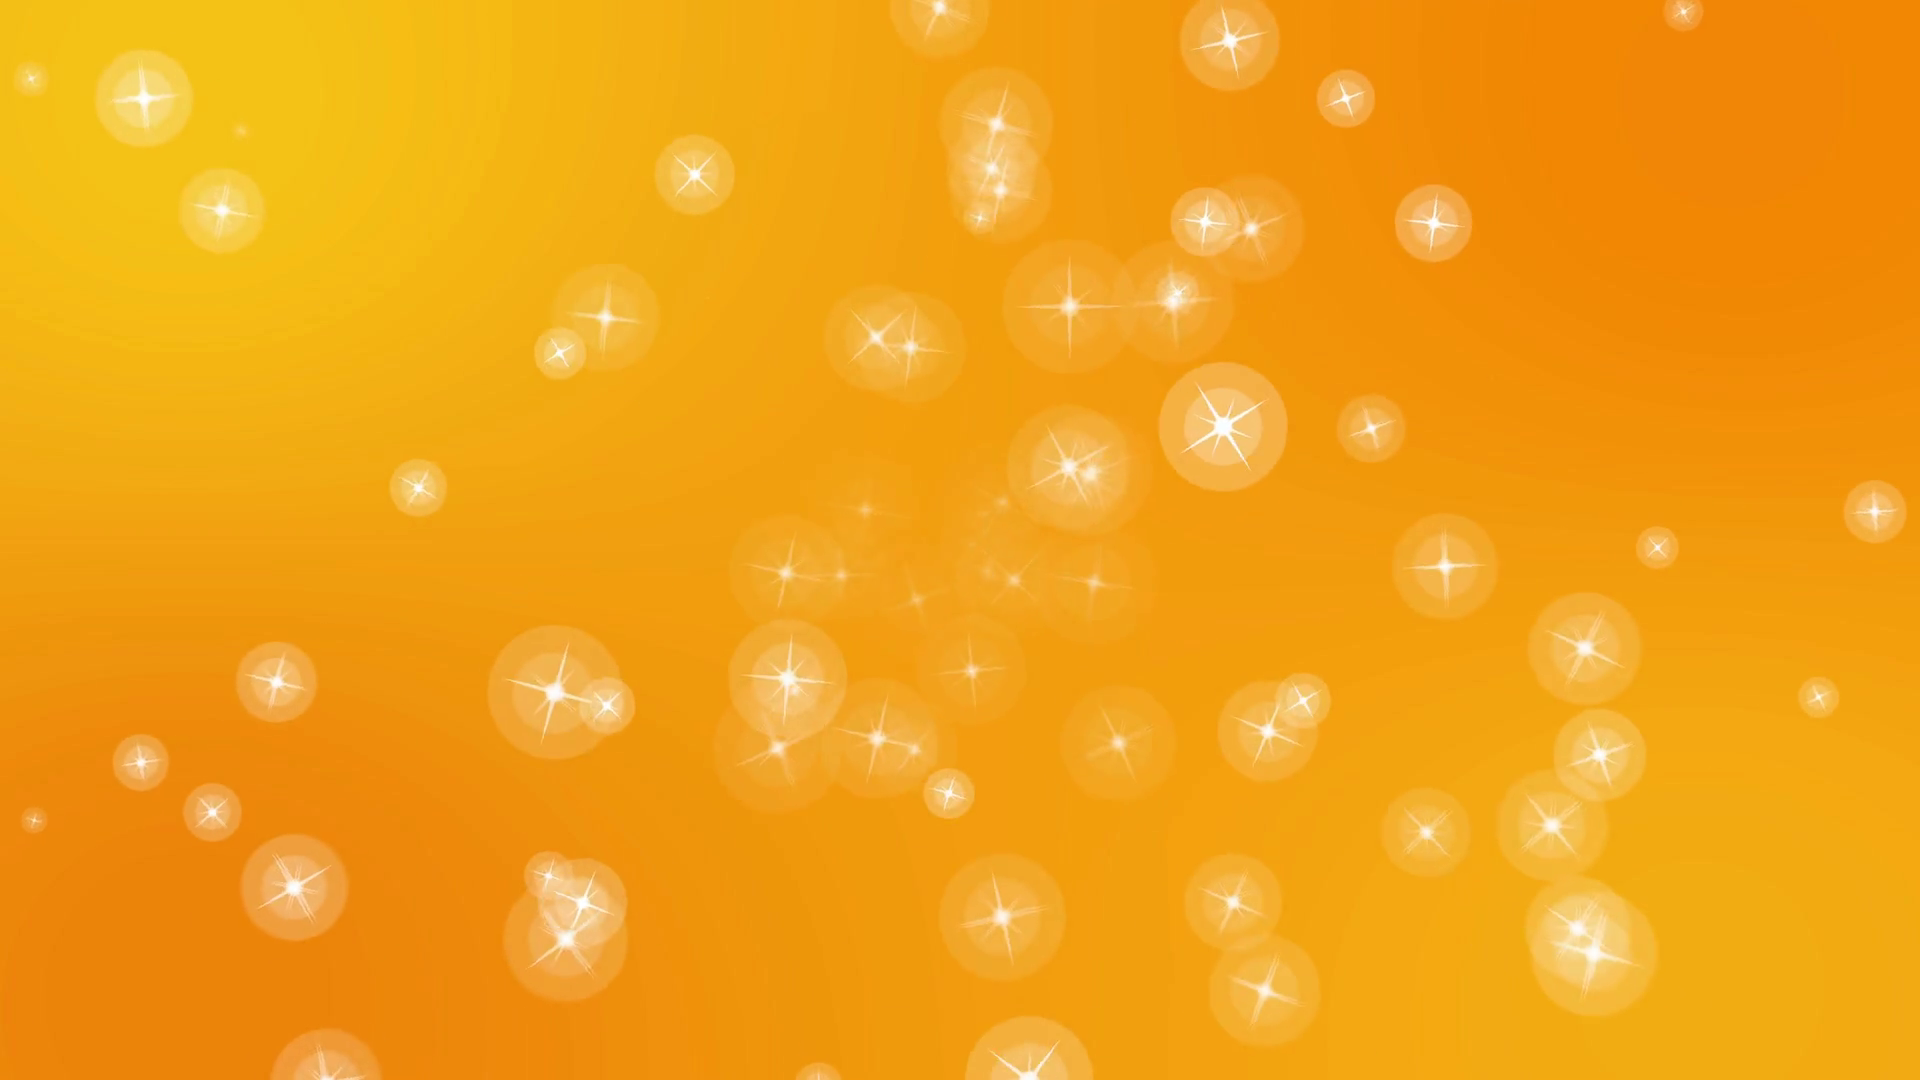 4k christmas stars festive cute motion background Orange Motion 1920x1080